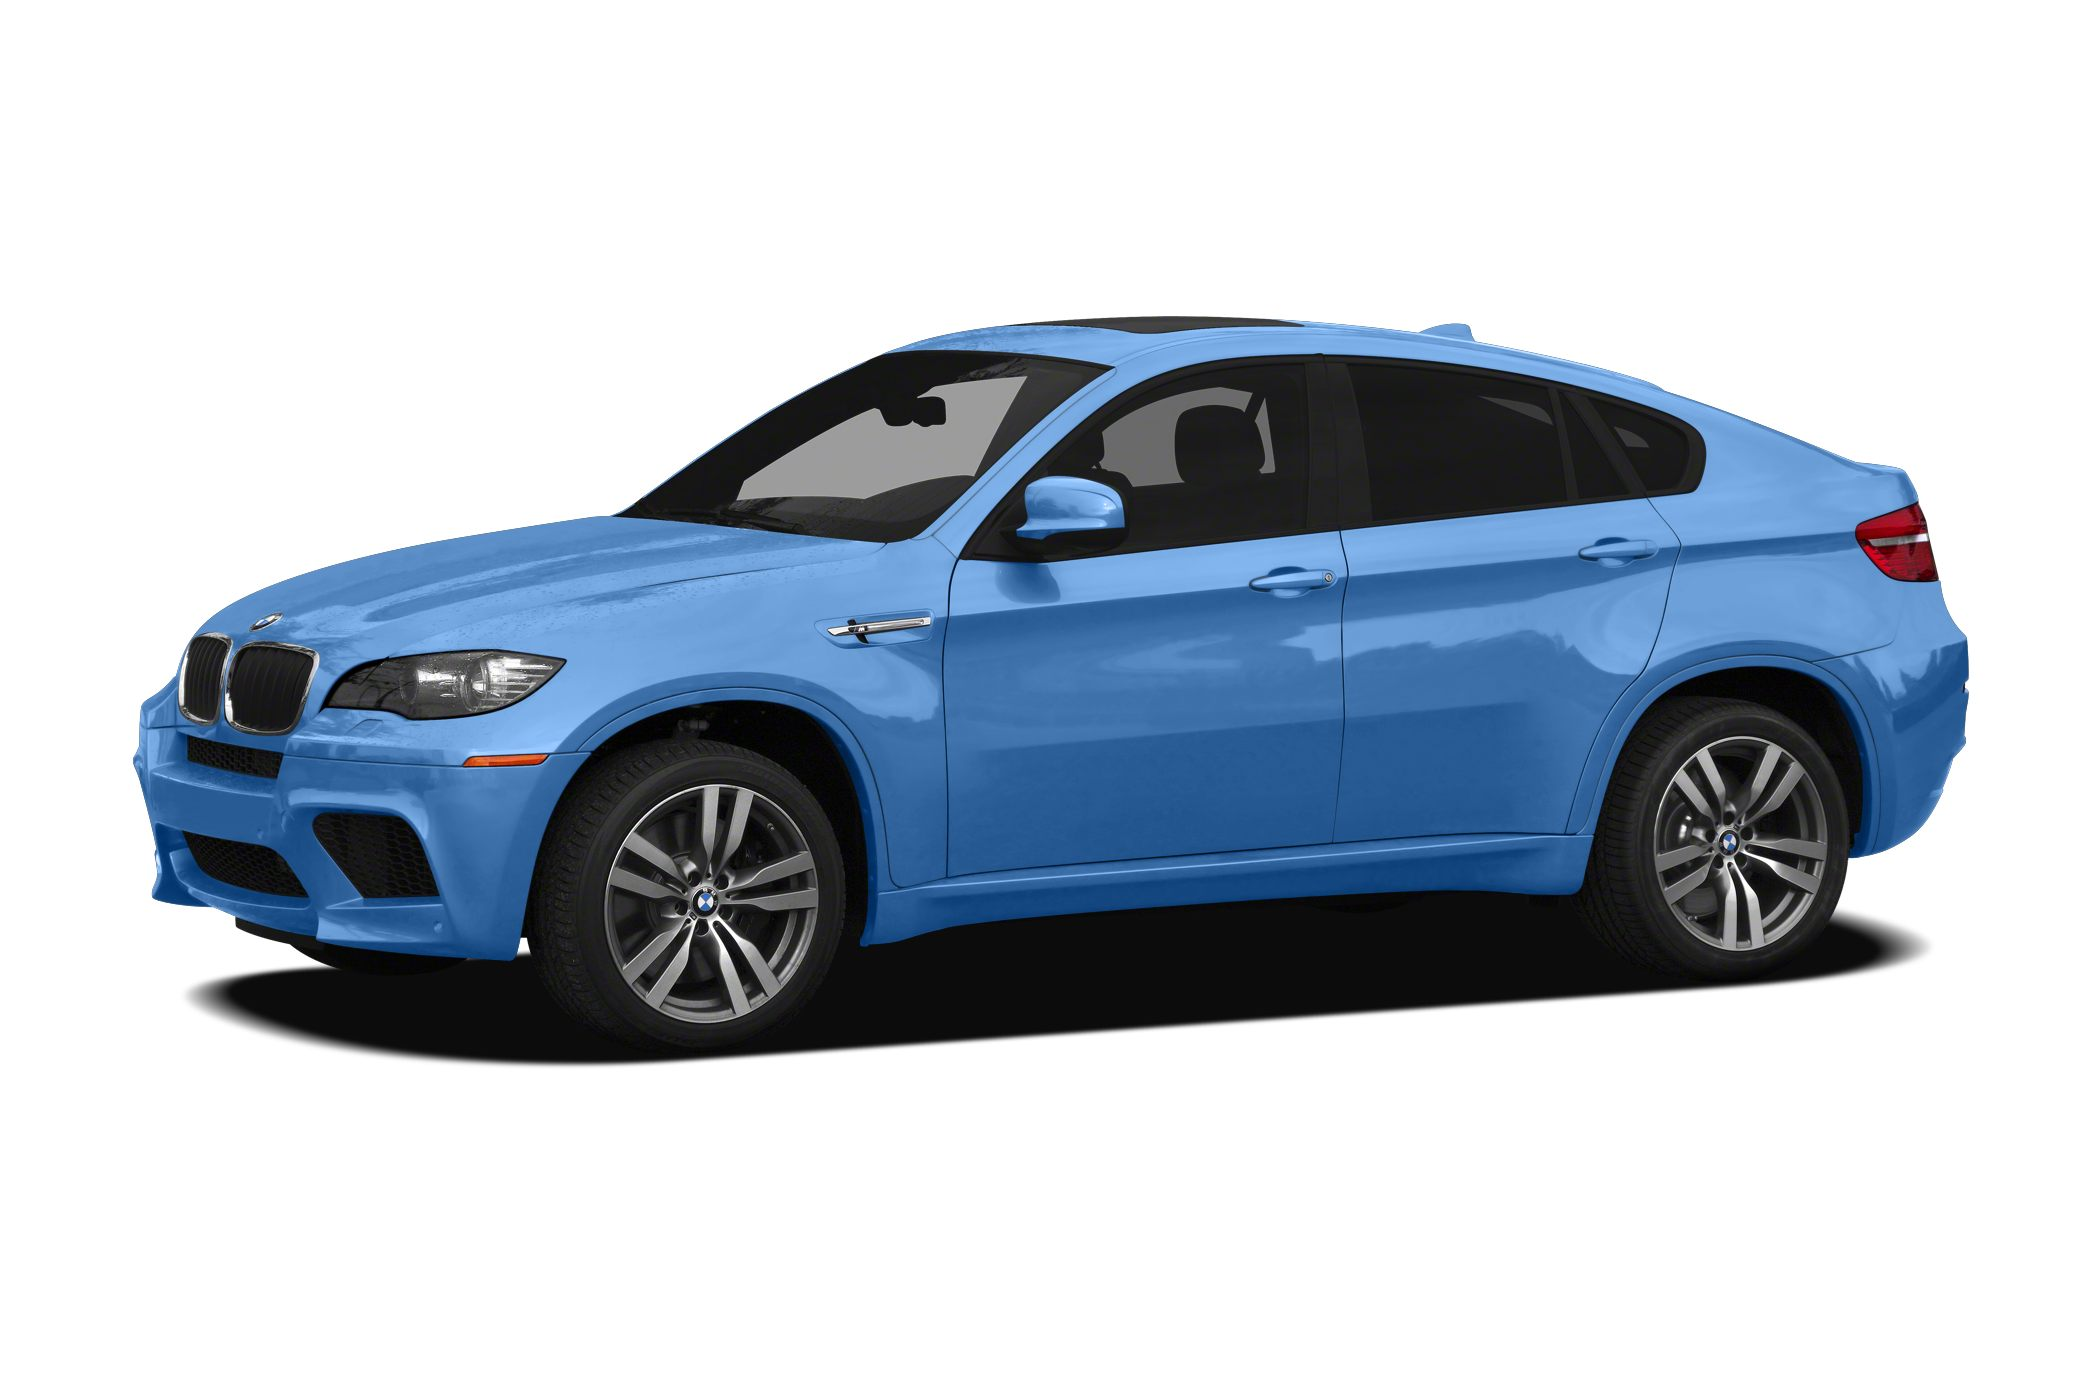 2010 BMW X6 M SUV for sale in Chicago for $49,998 with 29,917 miles